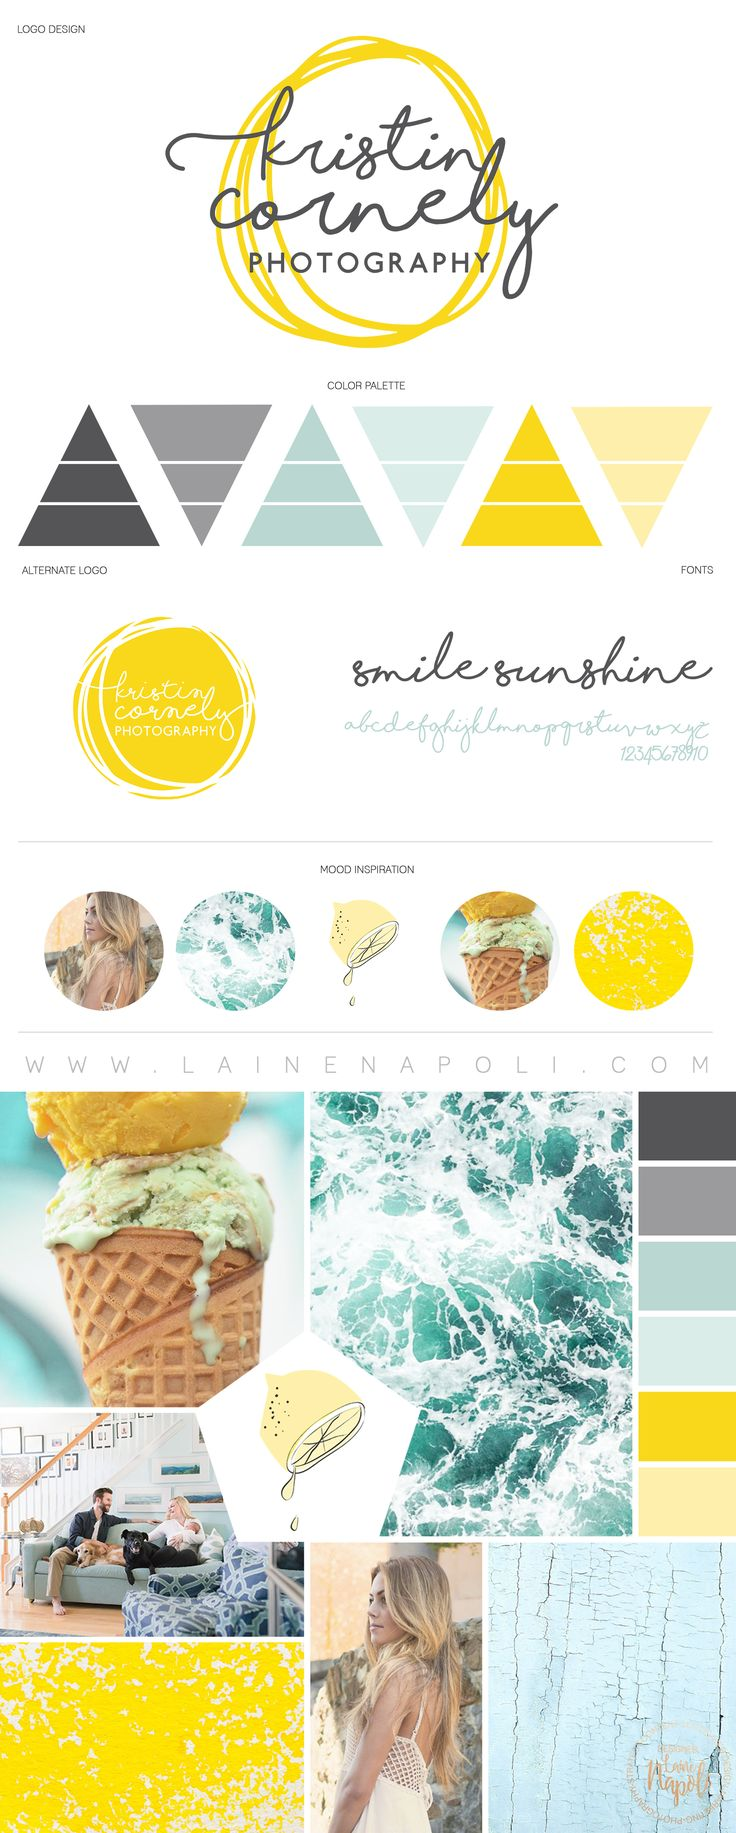 New launch from the Branding Studio. Kristin Cornely Photography. Sunshine Yellow, Grey, Light Blue, mood board with a touch of pure hapiness. Logo Design. Hand Drawn Sunshine Design. Photography Branding. Laine Napoli Branding www.lainenapoli.com